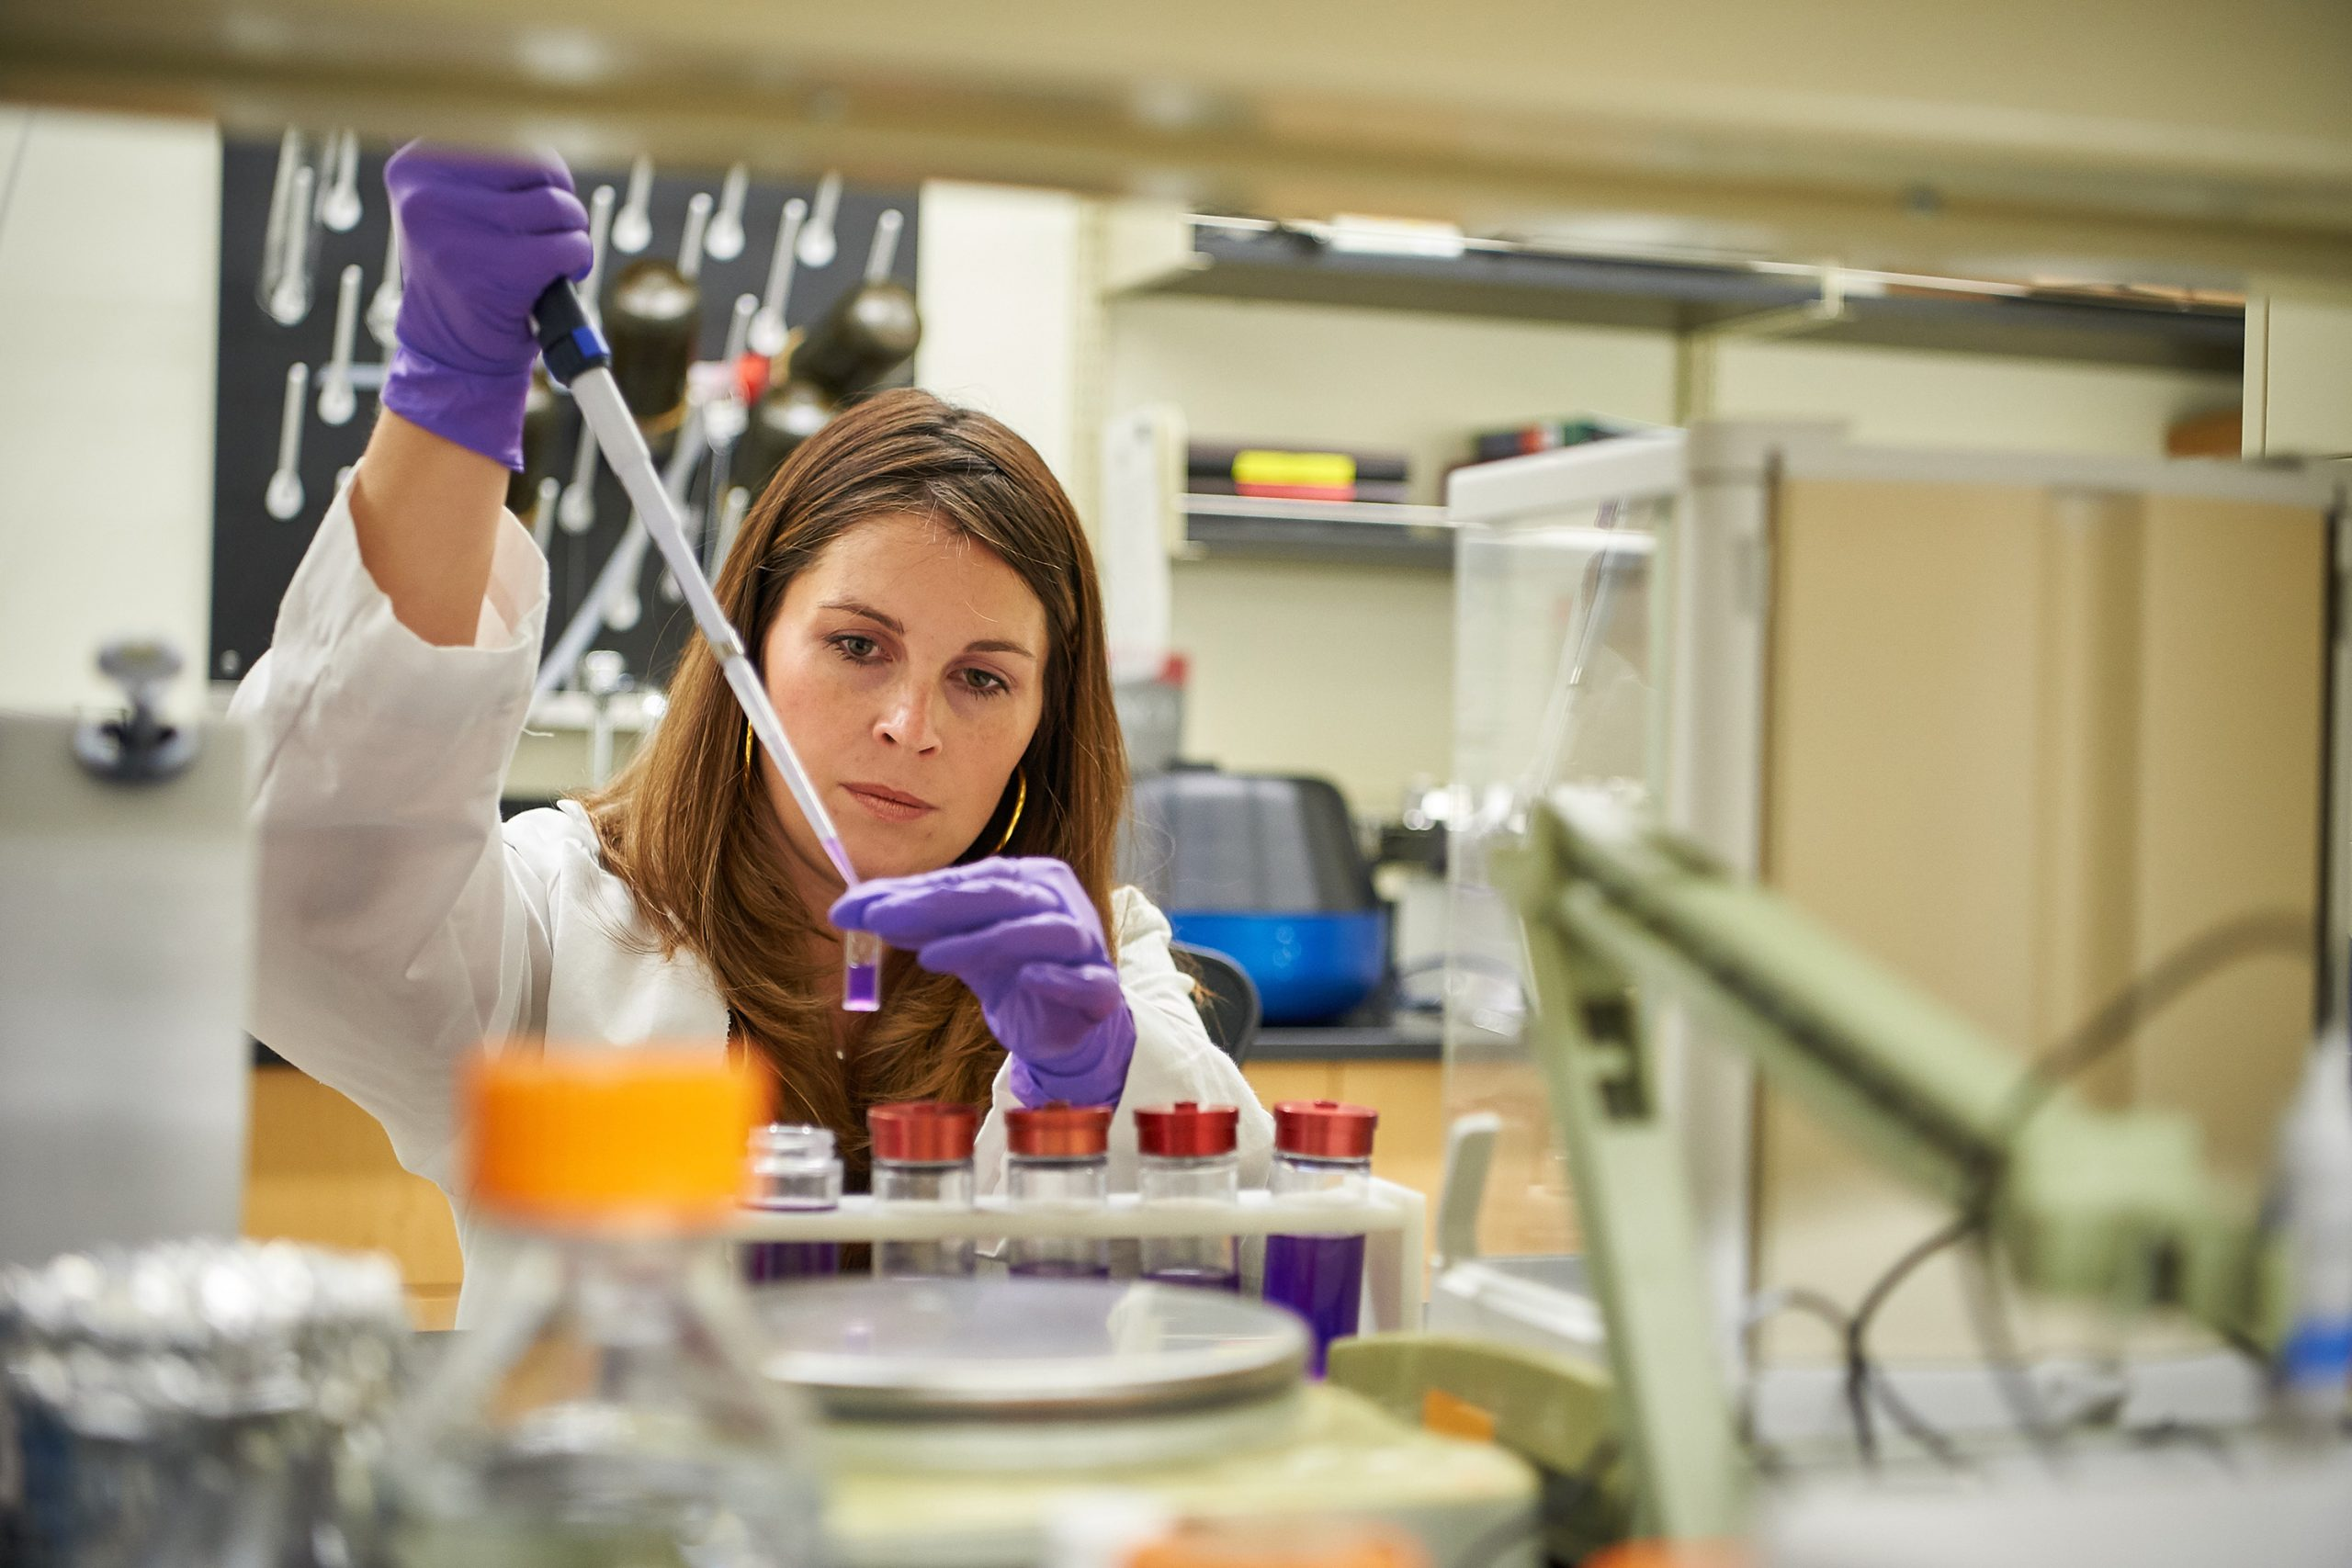 Nicole Wagner, CEO of UConn TIP company LambdaVision, works in the lab at the Cell and Genome Sciences Building in Farmington